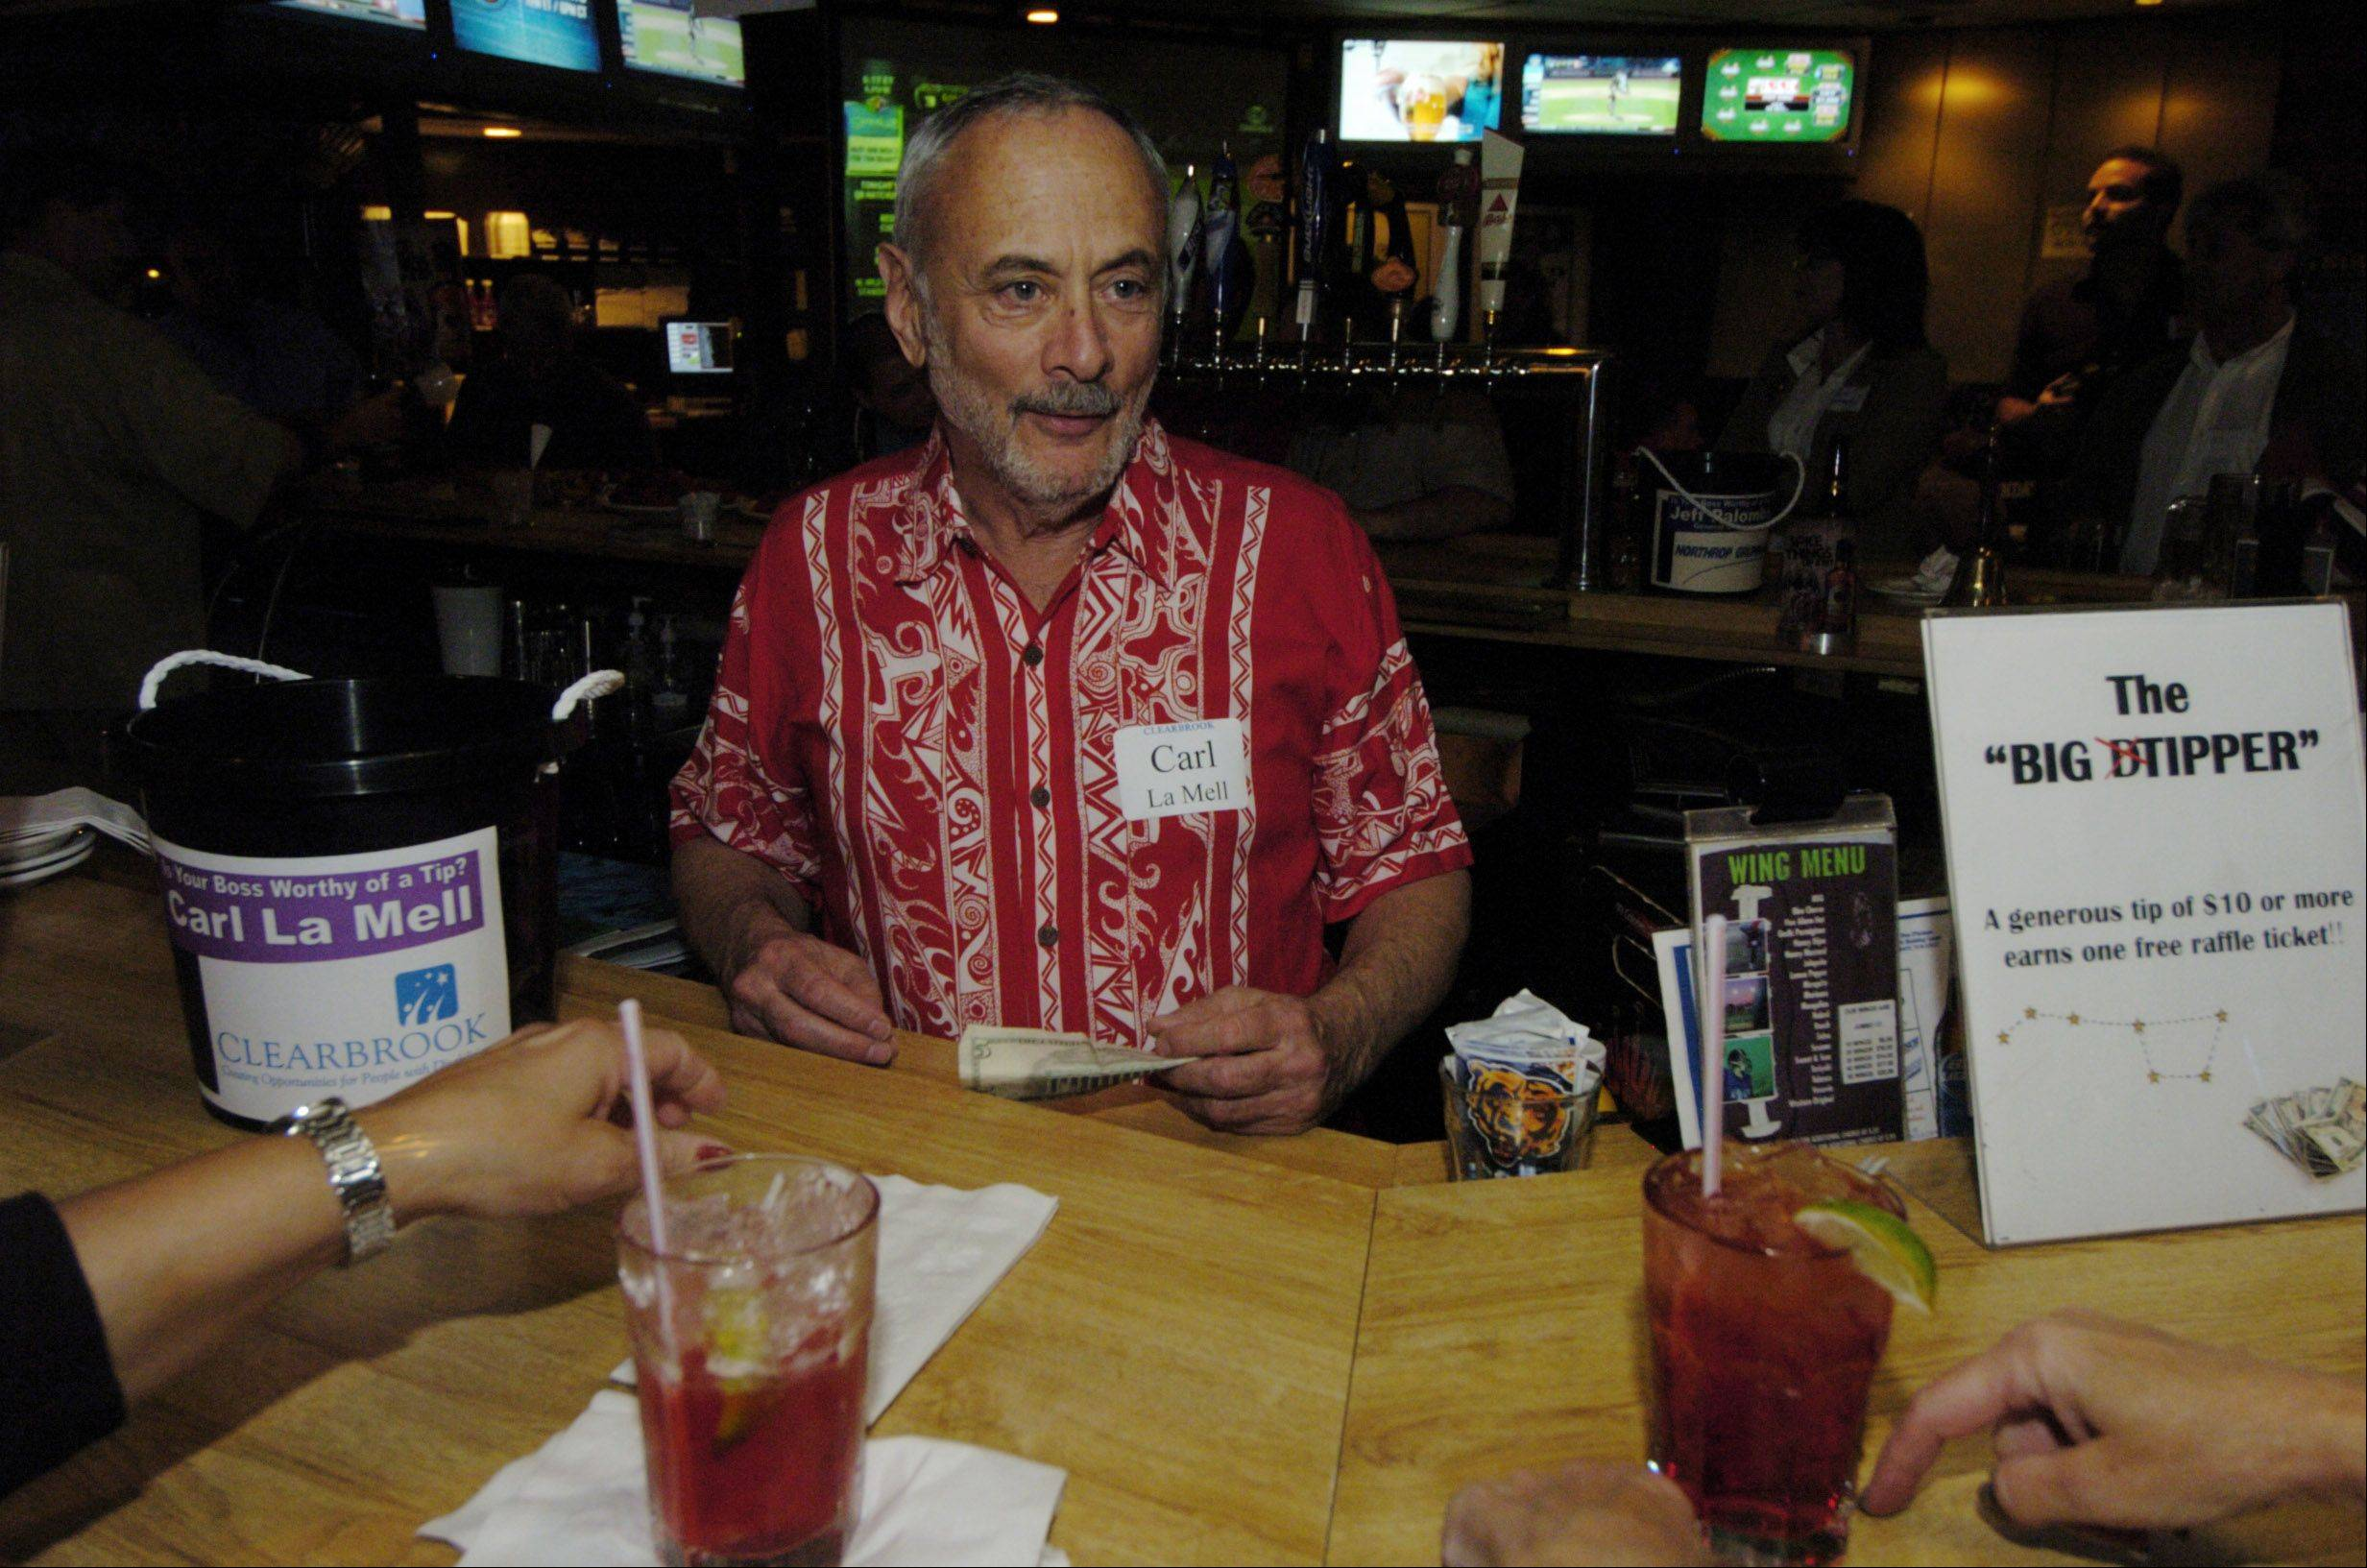 Carl LaMell, president of Clearbrook, competes as a celebrity bartender Thursday in a Rolling Meadows Chamber of Commerce event at Stadium Sports Club.